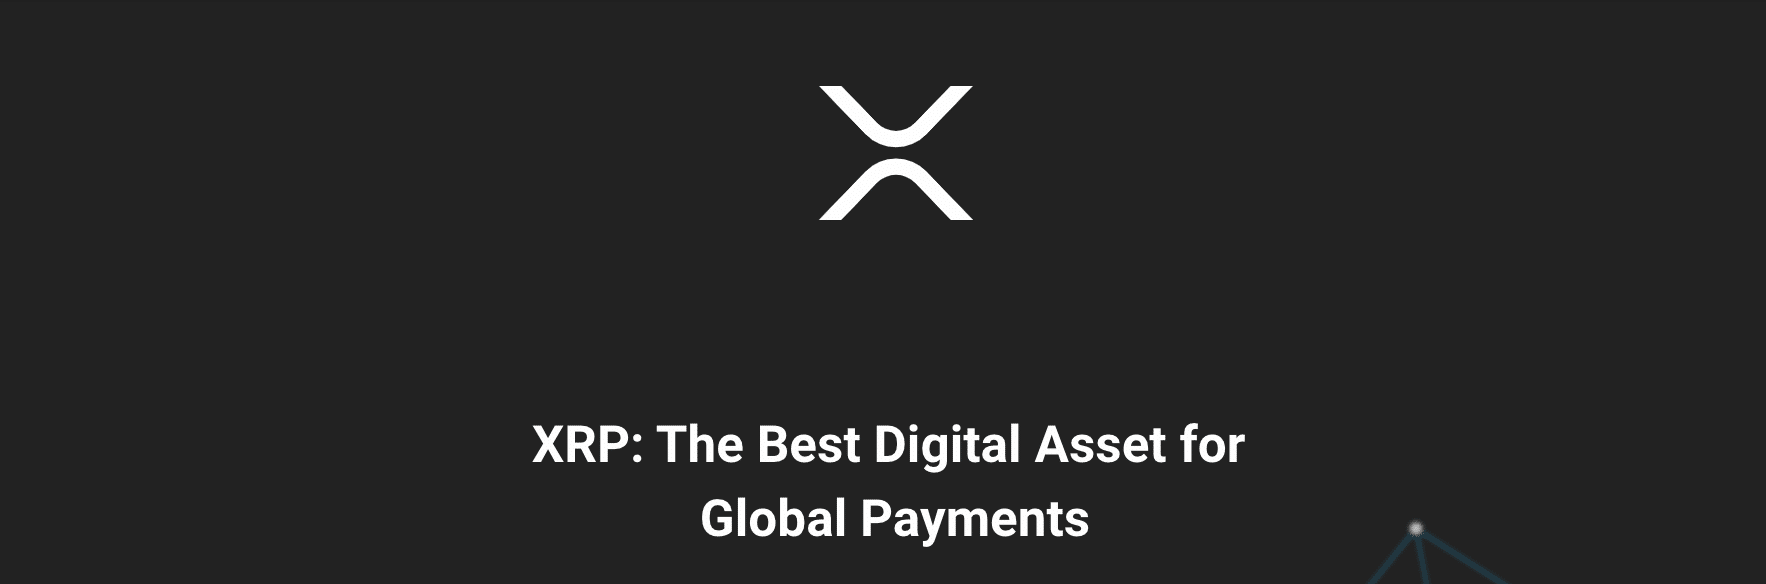 xrp system